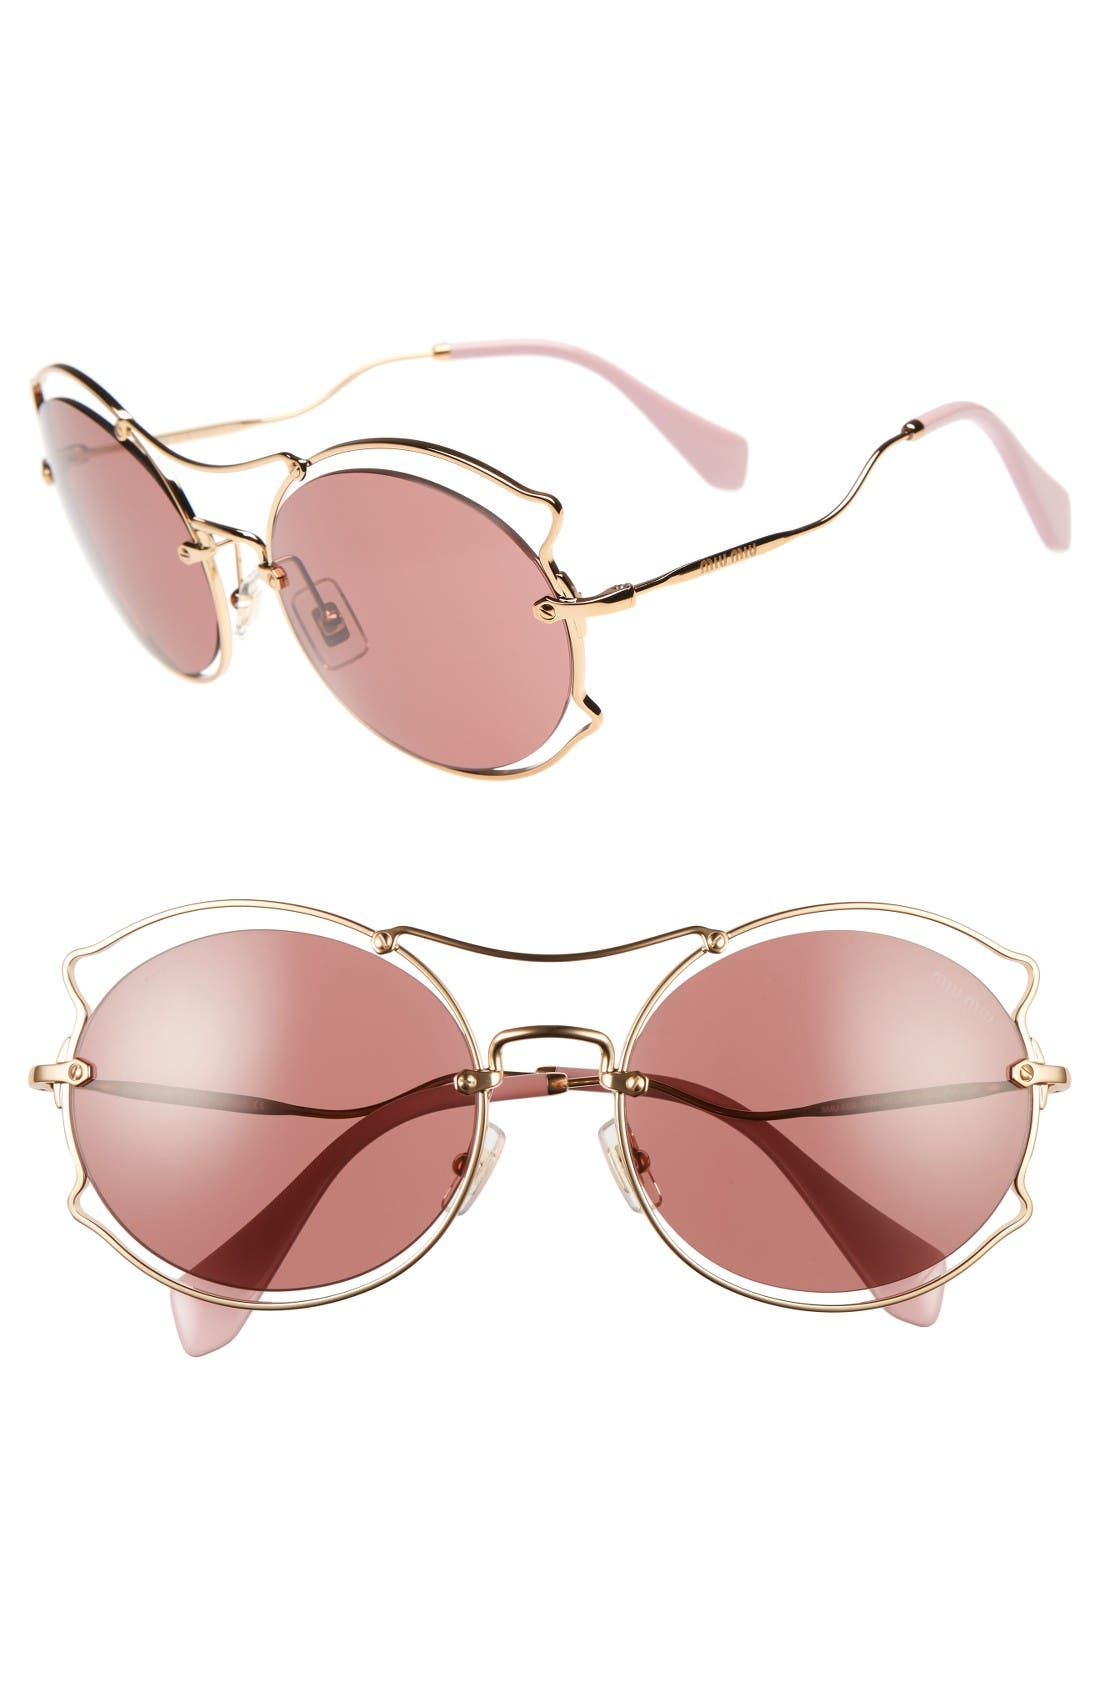 MIU MIU 57mm Retro Sunglasses